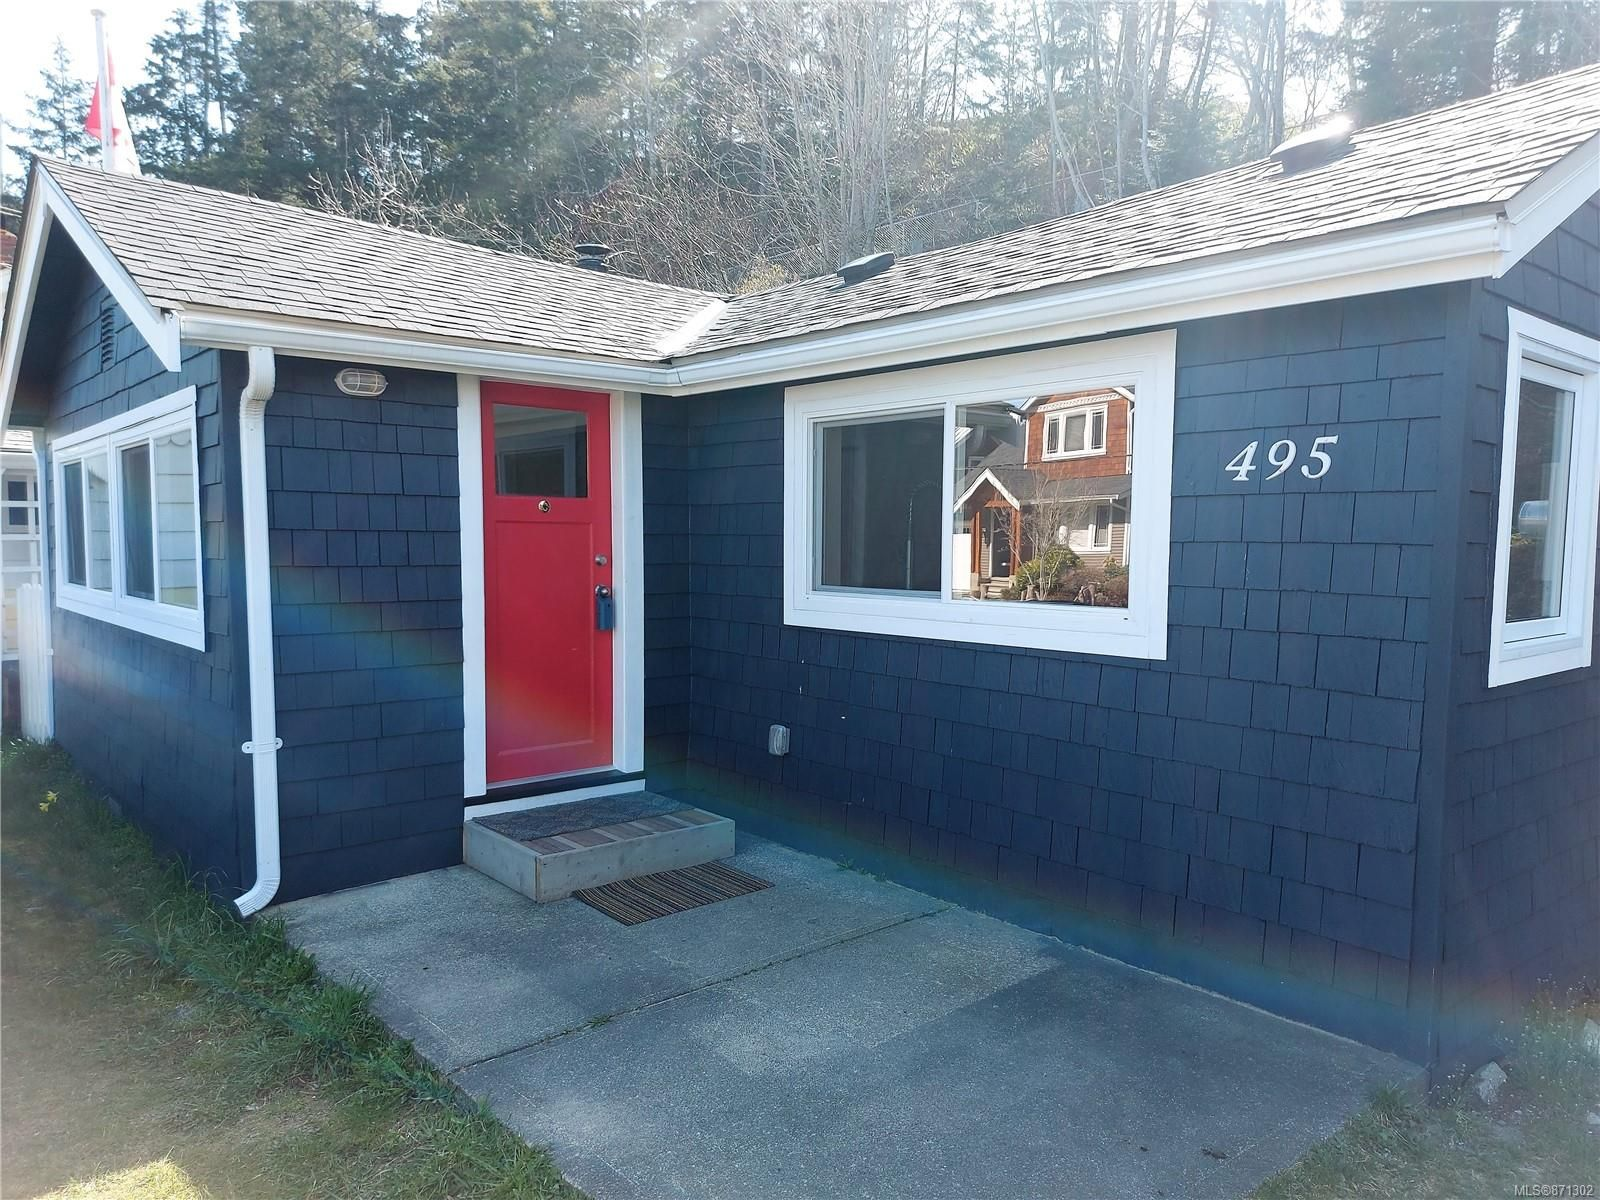 Main Photo: 495 Windslow Rd in : CV Comox (Town of) House for sale (Comox Valley)  : MLS®# 871302